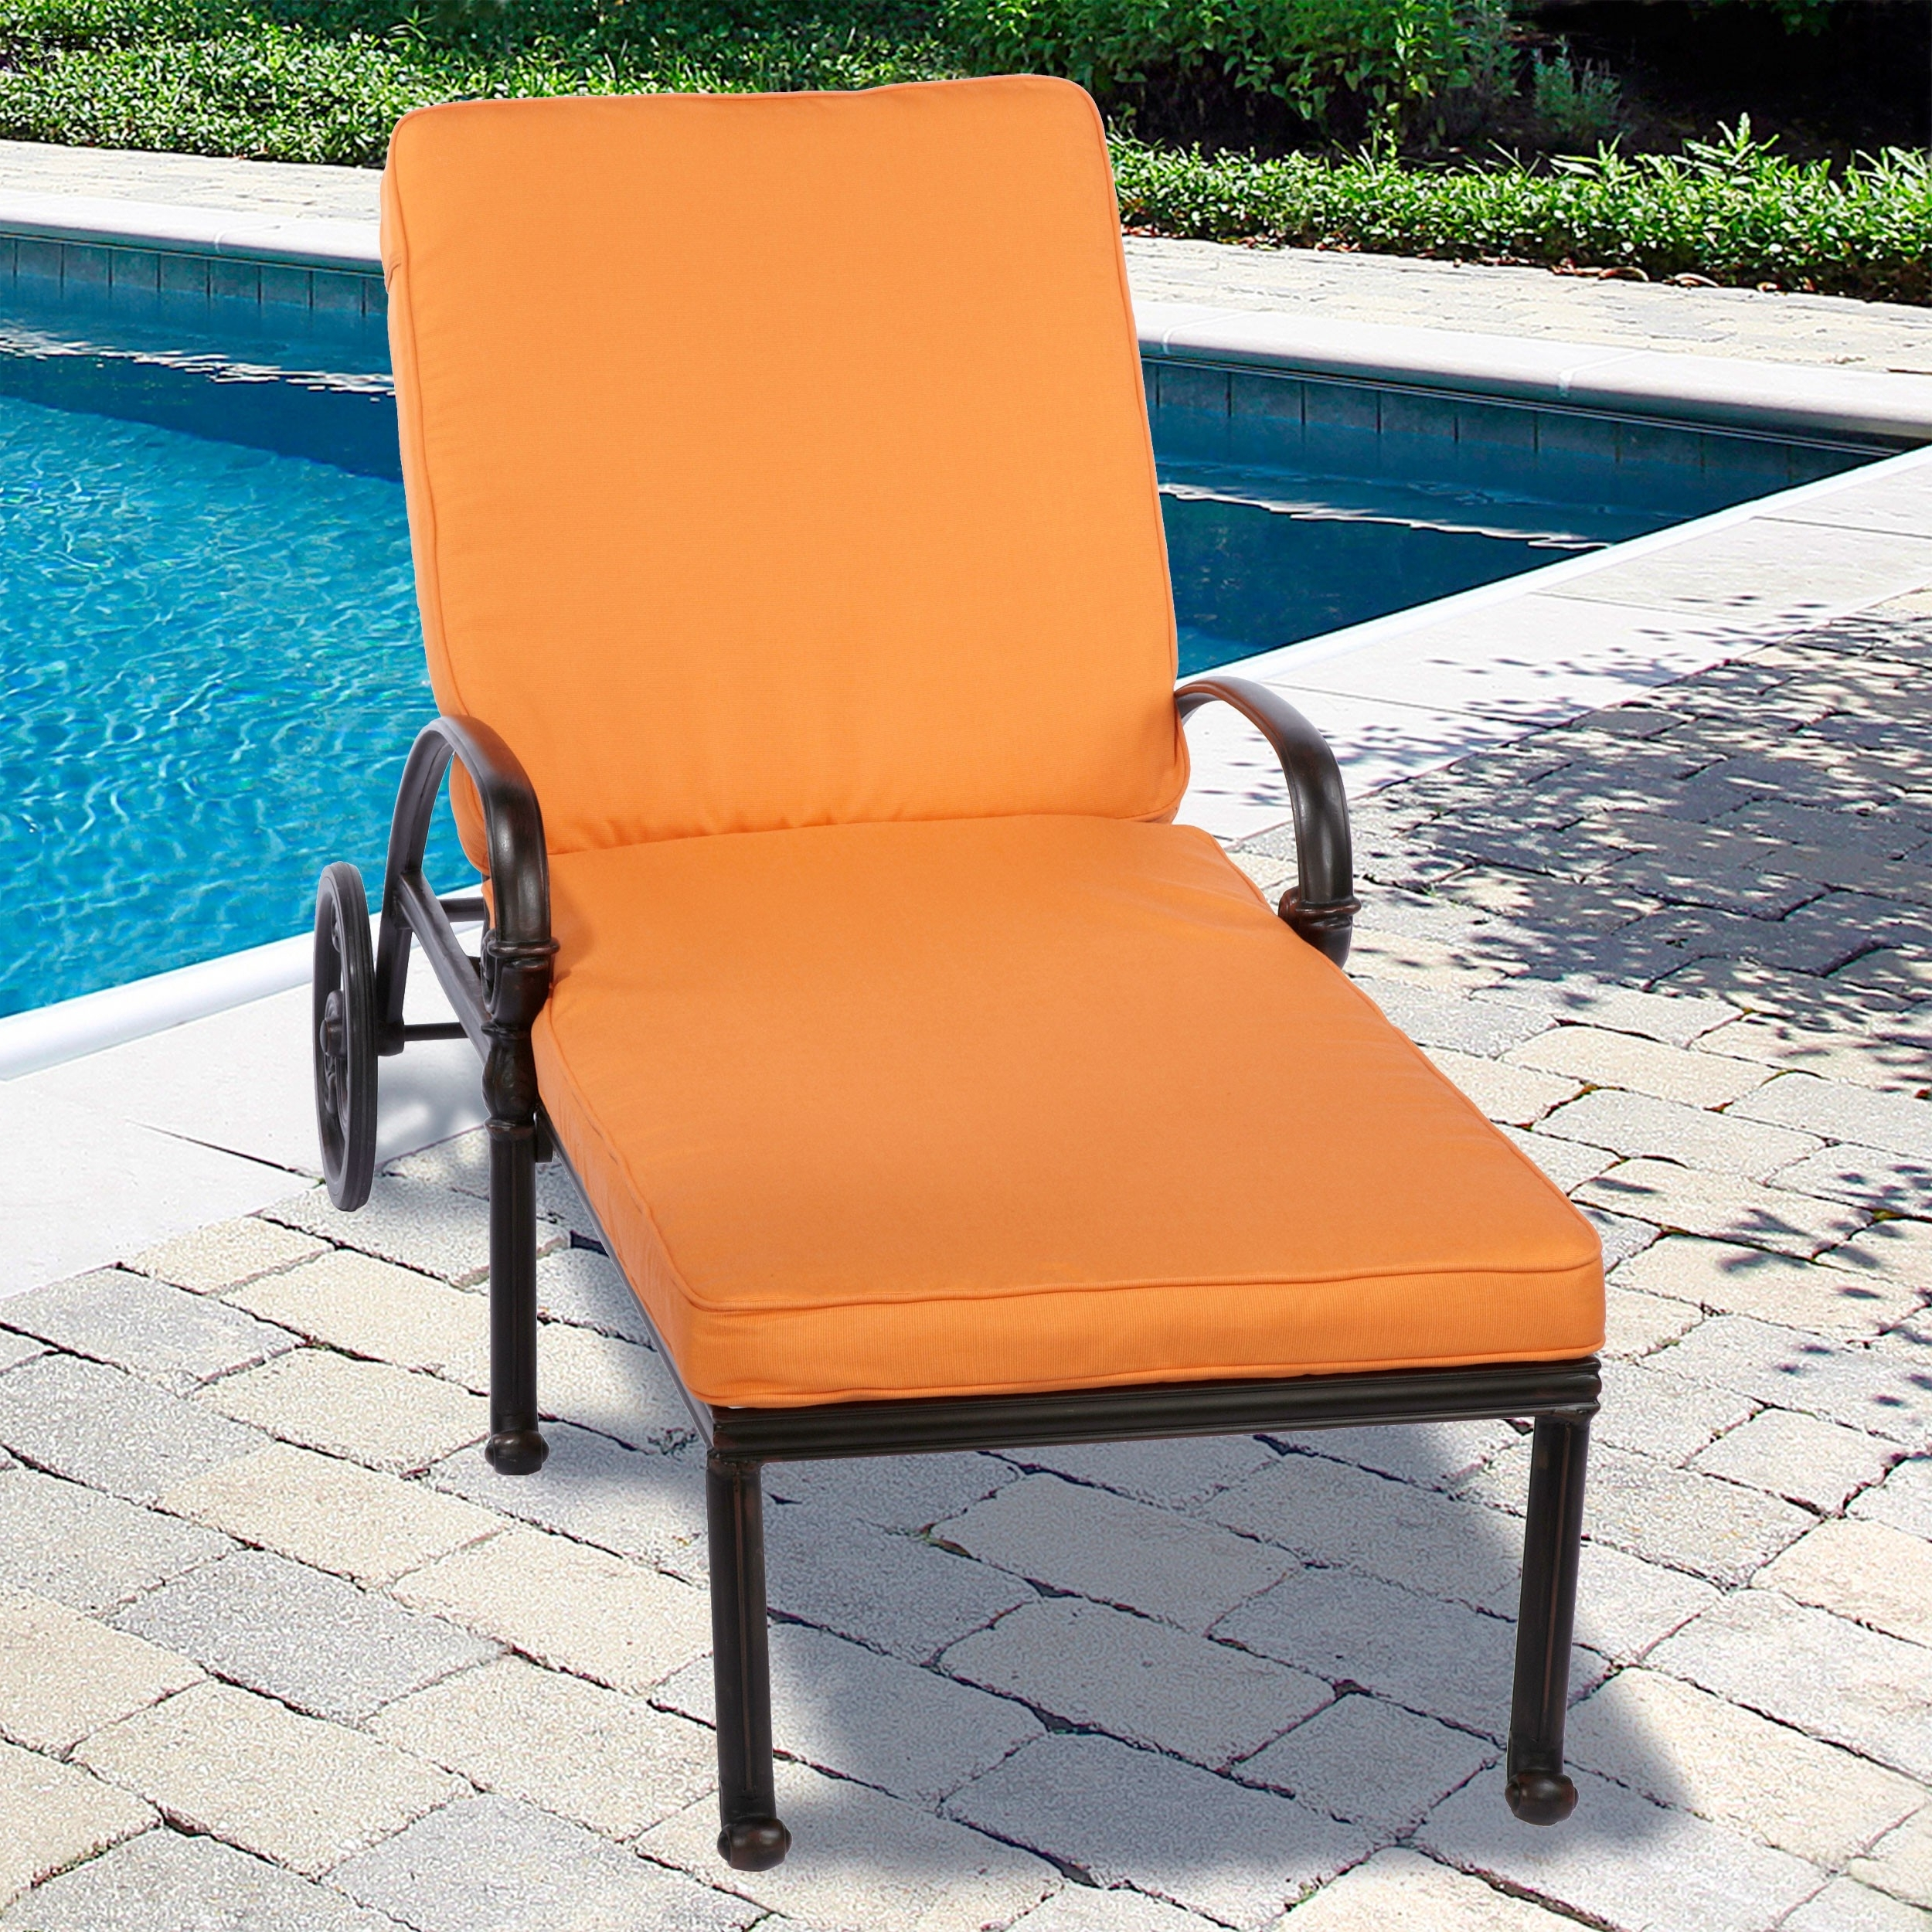 Contemporary Outdoor Chaise Lounge Chairs With Regard To Recent Convertible Chair : Outdoor Furniture Cushions Clearance Outside (View 8 of 15)